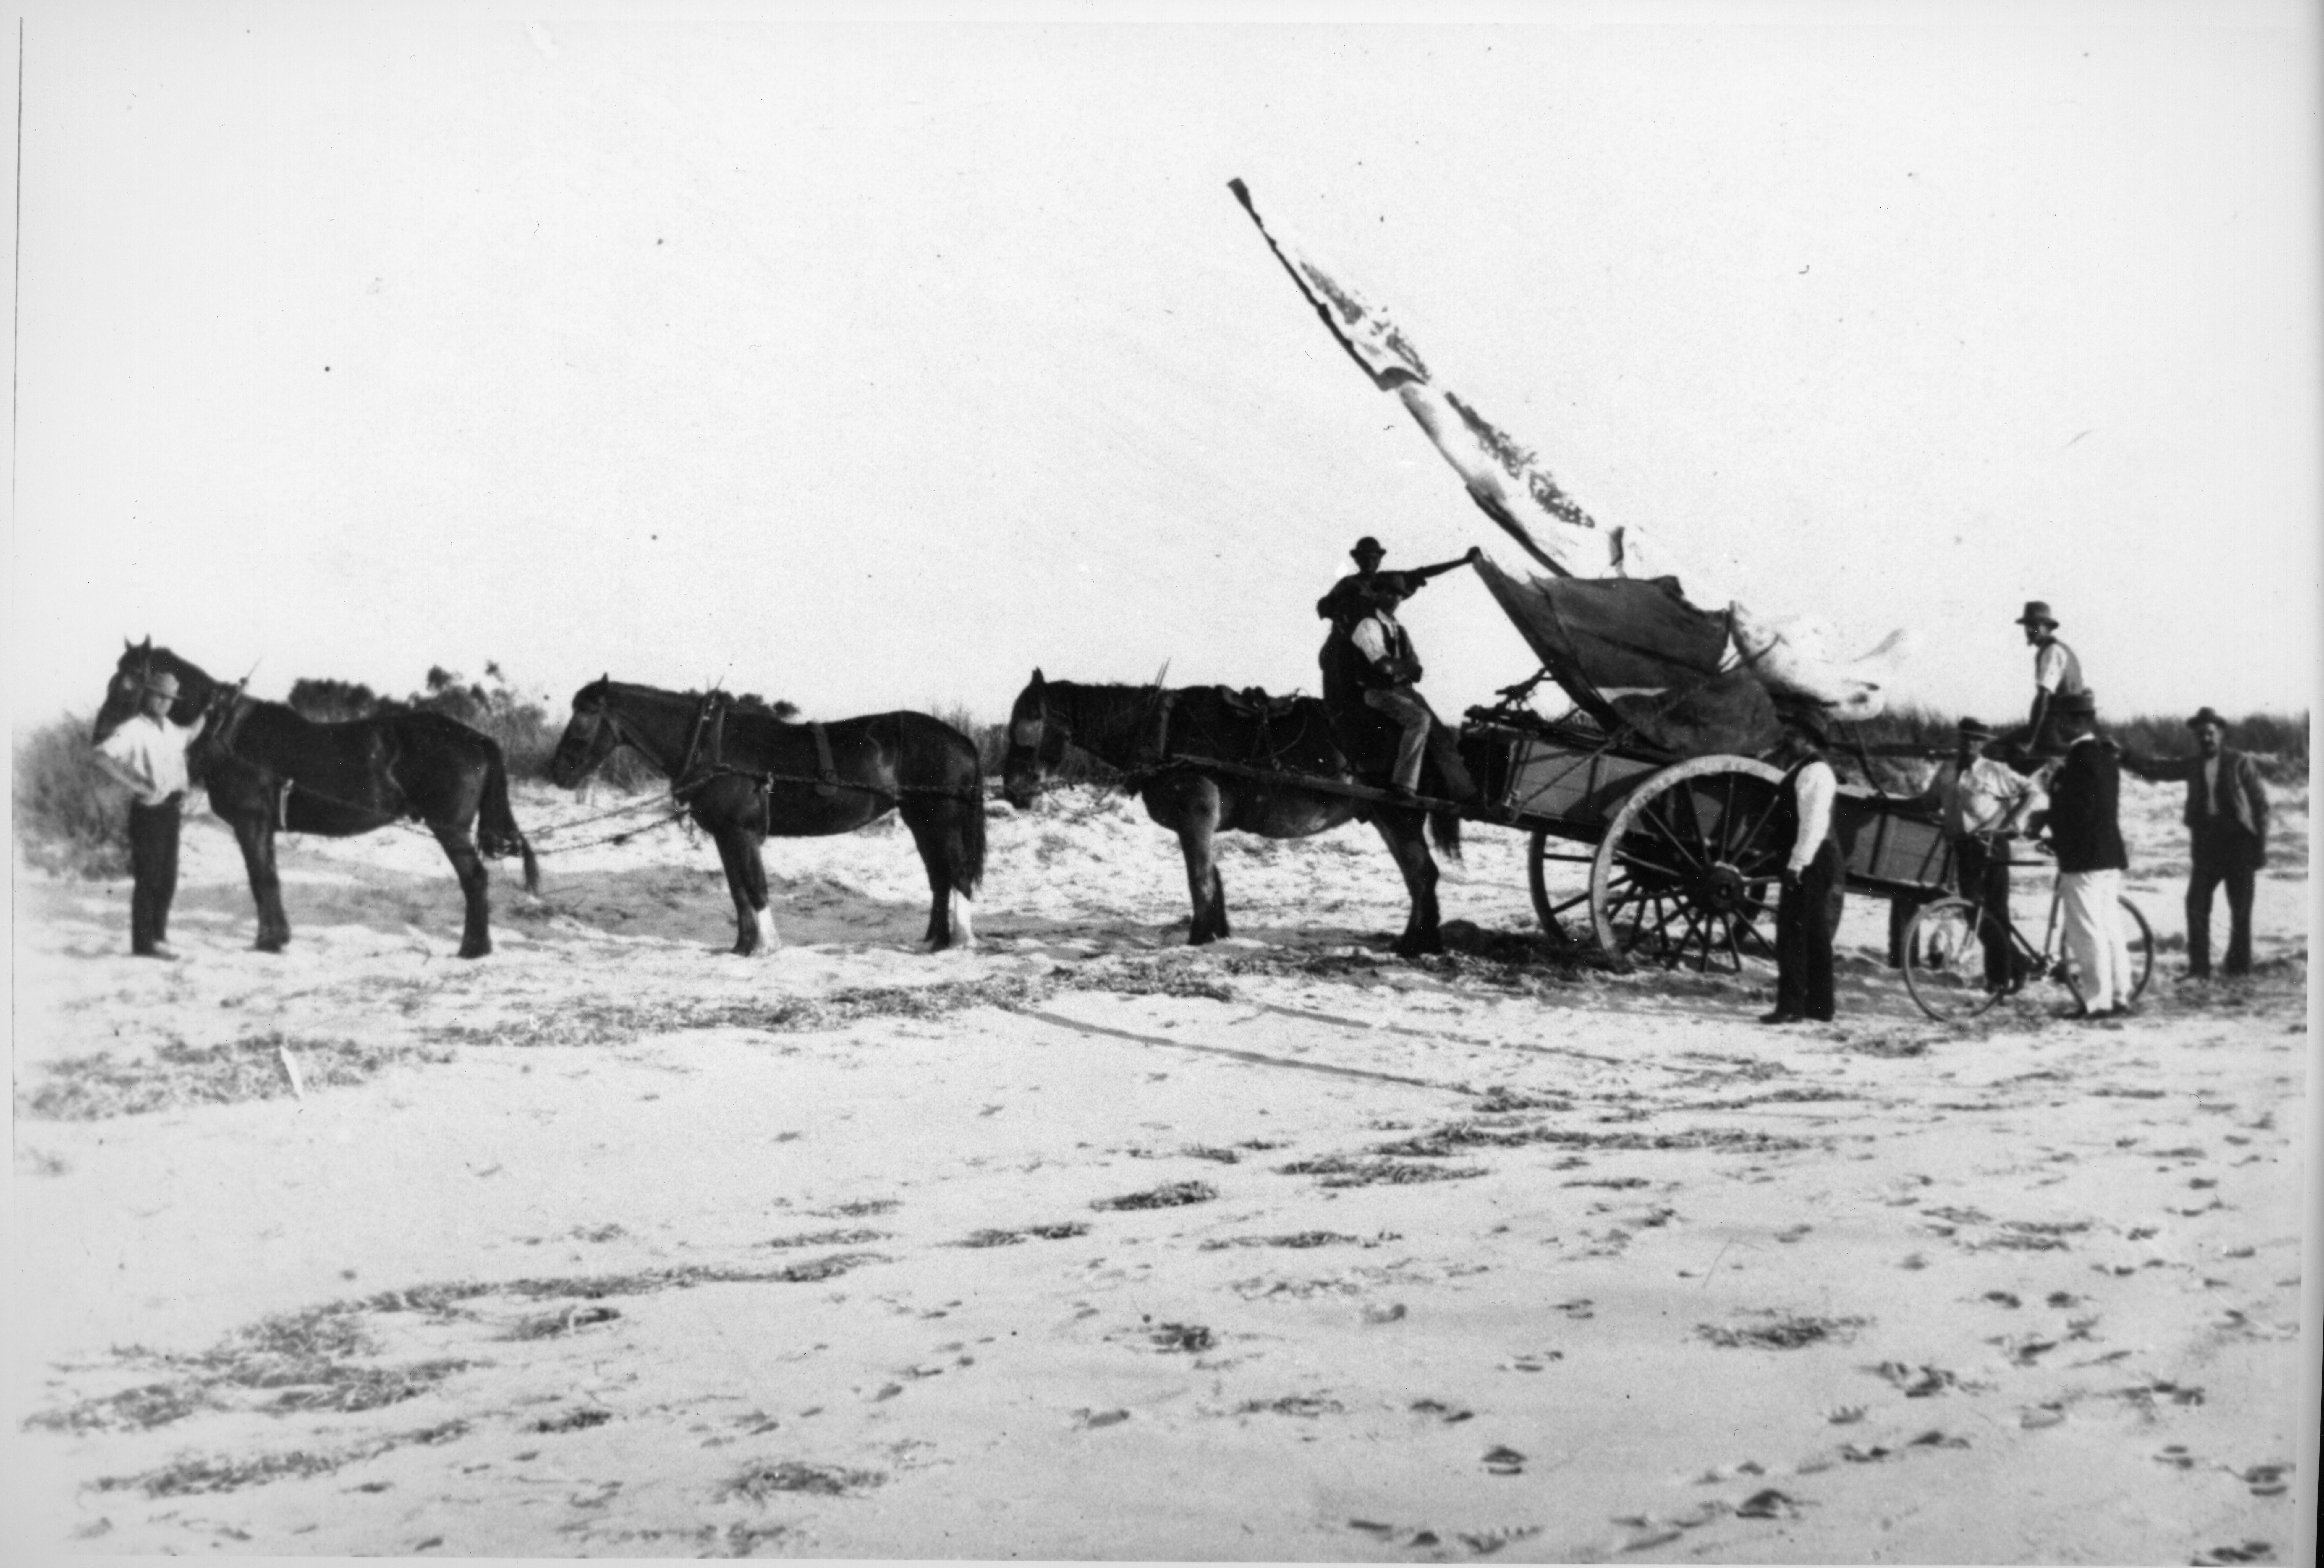 Black and white photo of a horse drawn cart holding a large bone.